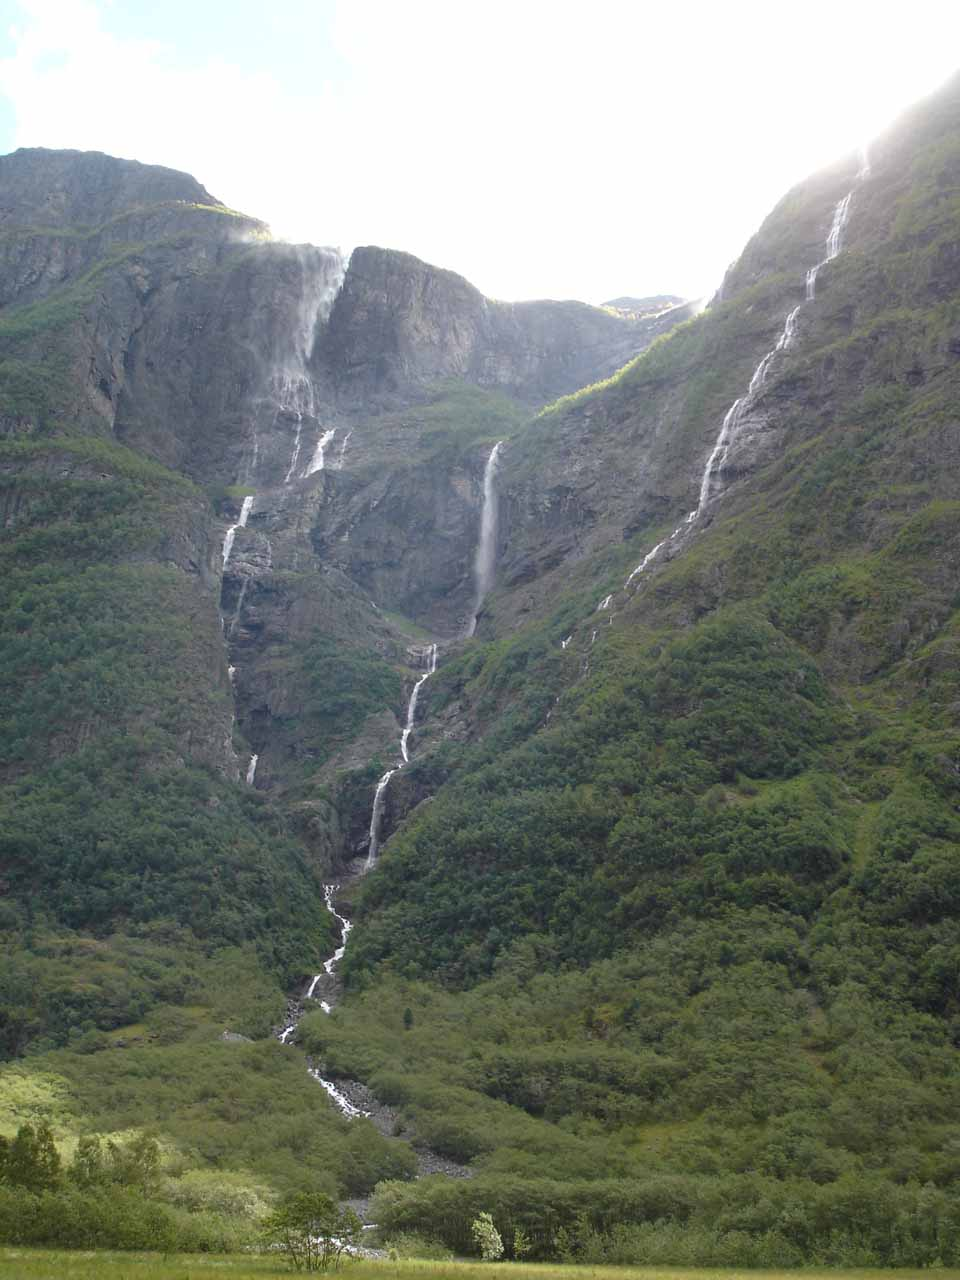 A slightly more centered view of Kjelfossen from one of the handful of pullouts before it within Nærøydal Valley